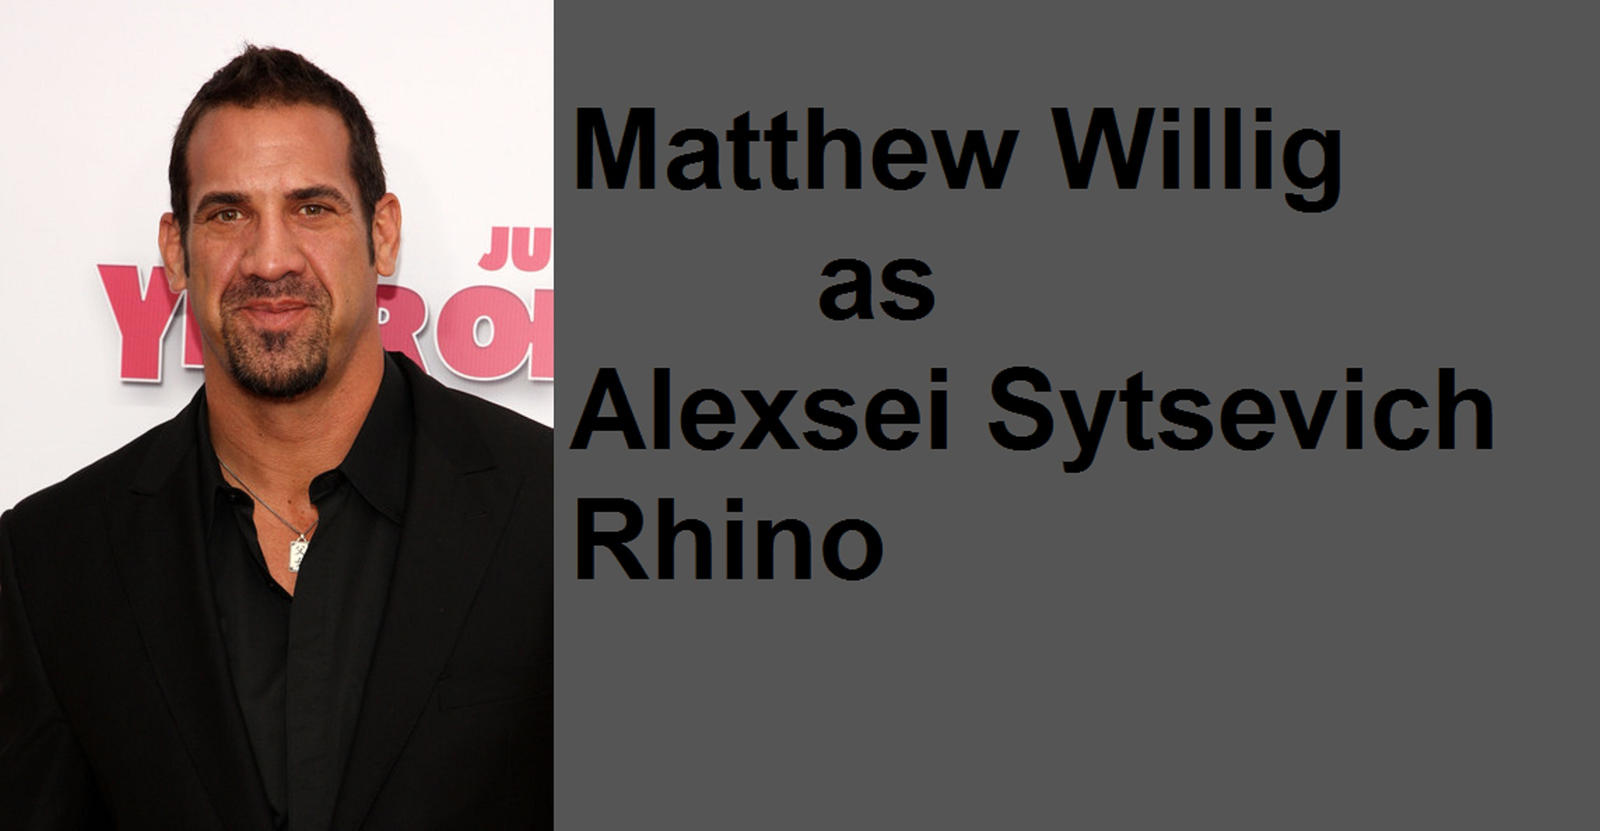 matthew willig interviewmatthew willig height, matthew willig instagram, matthew willig, matthew willig dexter, matthew willig wife, matthew willig bio, matthew willig interview, matthew willig wikipedia, matthew willig net worth, matthew willig imdb, matthew willig stats, matthew willig lash, matthew willig agents of shield, matthew willig weight, matthew willig concussion, matthew willig workout, matthew willig ethnicity, matthew willig commercial, matthew willig chuck